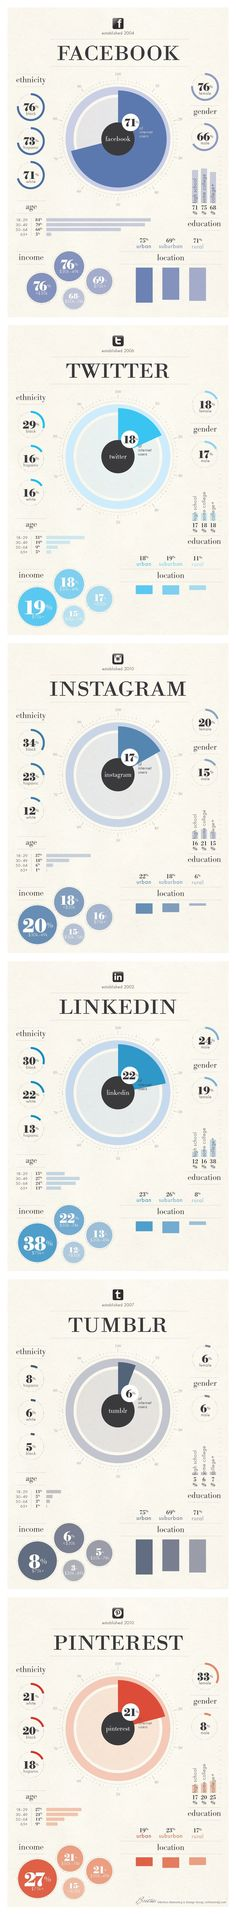 #SocialMedia 2014: User Demographics For Facebook, Twitter, Instagram, LinkedIn, Tumblr and #Pinterest - #infographic #bespokedigitalmedia http://www.bespokedigitalmedia.co.in